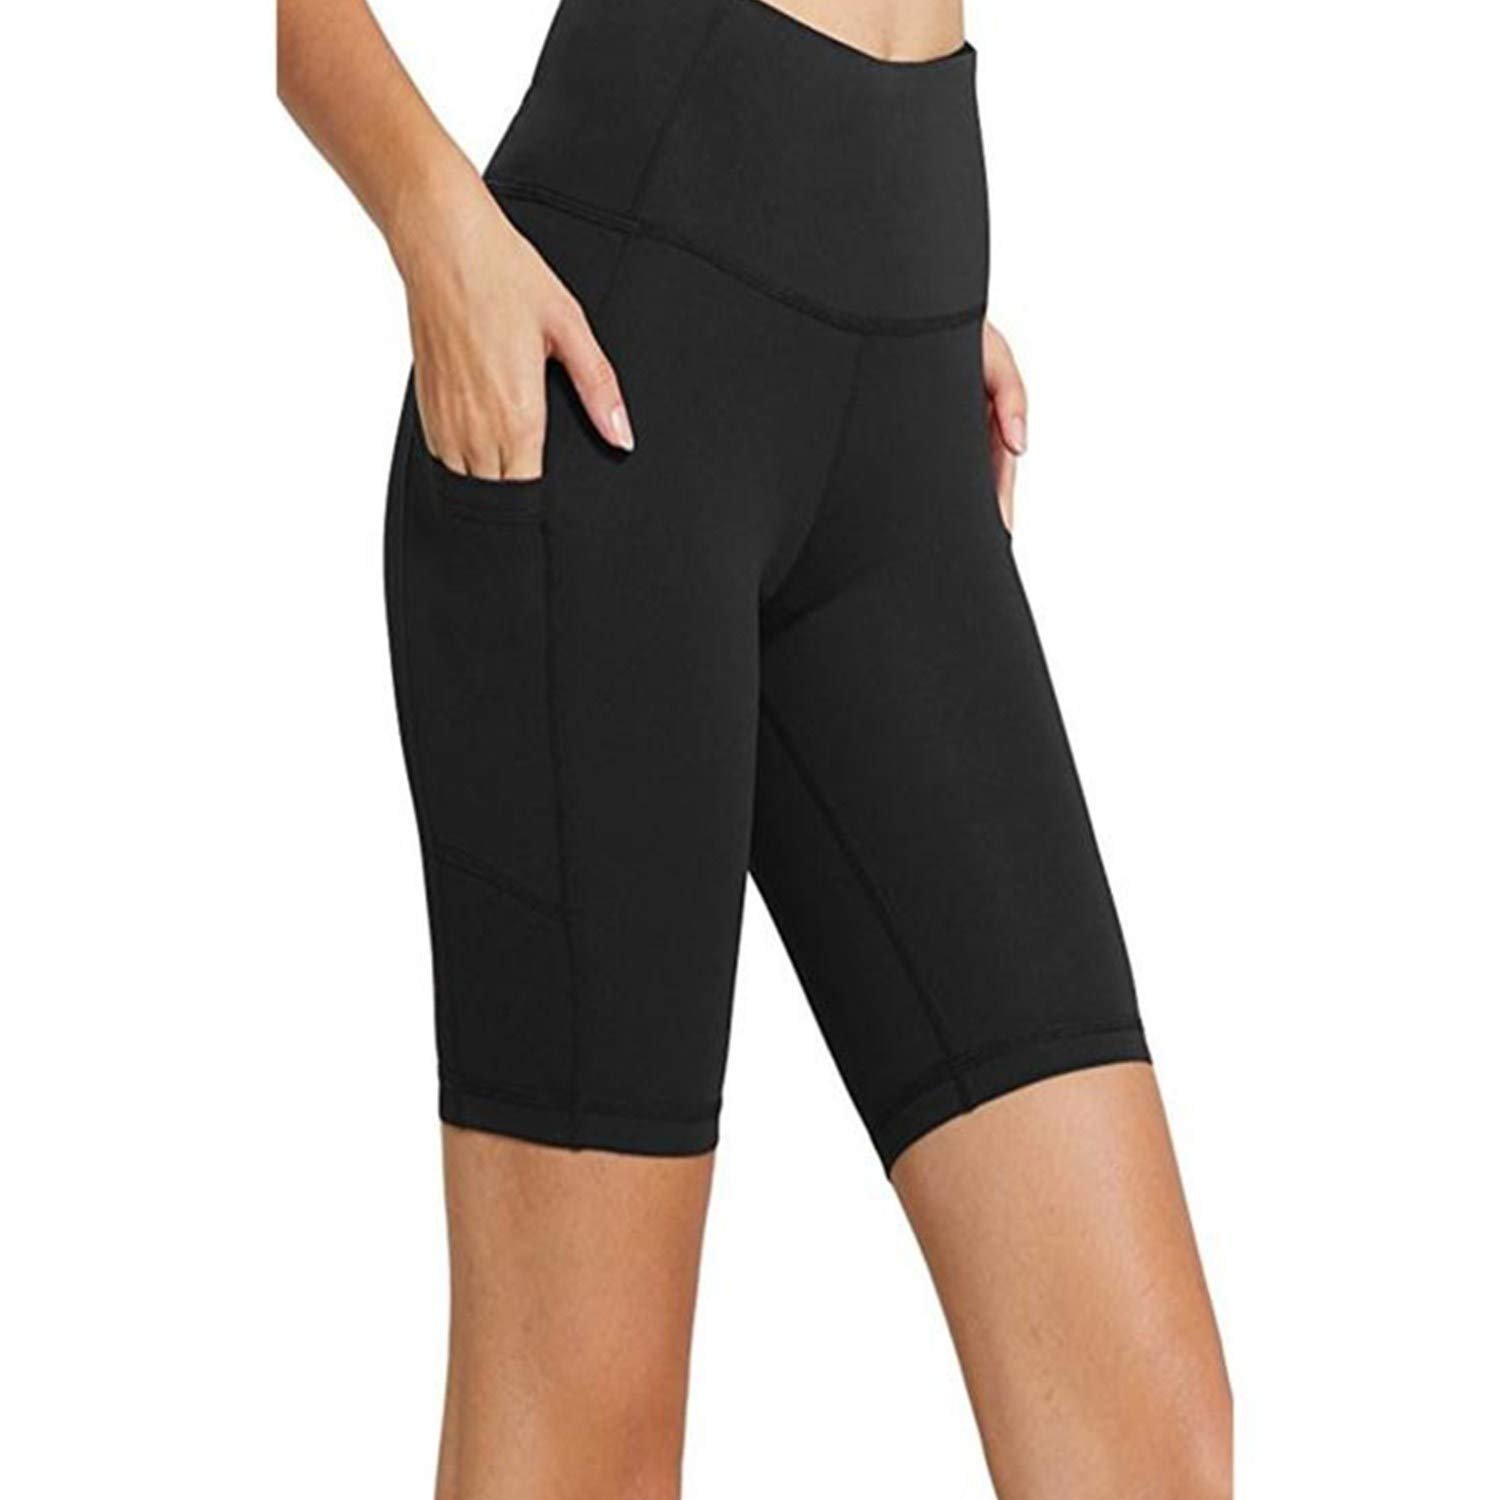 Feitengtd Women Workout Out Pocket Leggings Fitness Sports Gym Running Yoga Athletic Pants (Black, S)